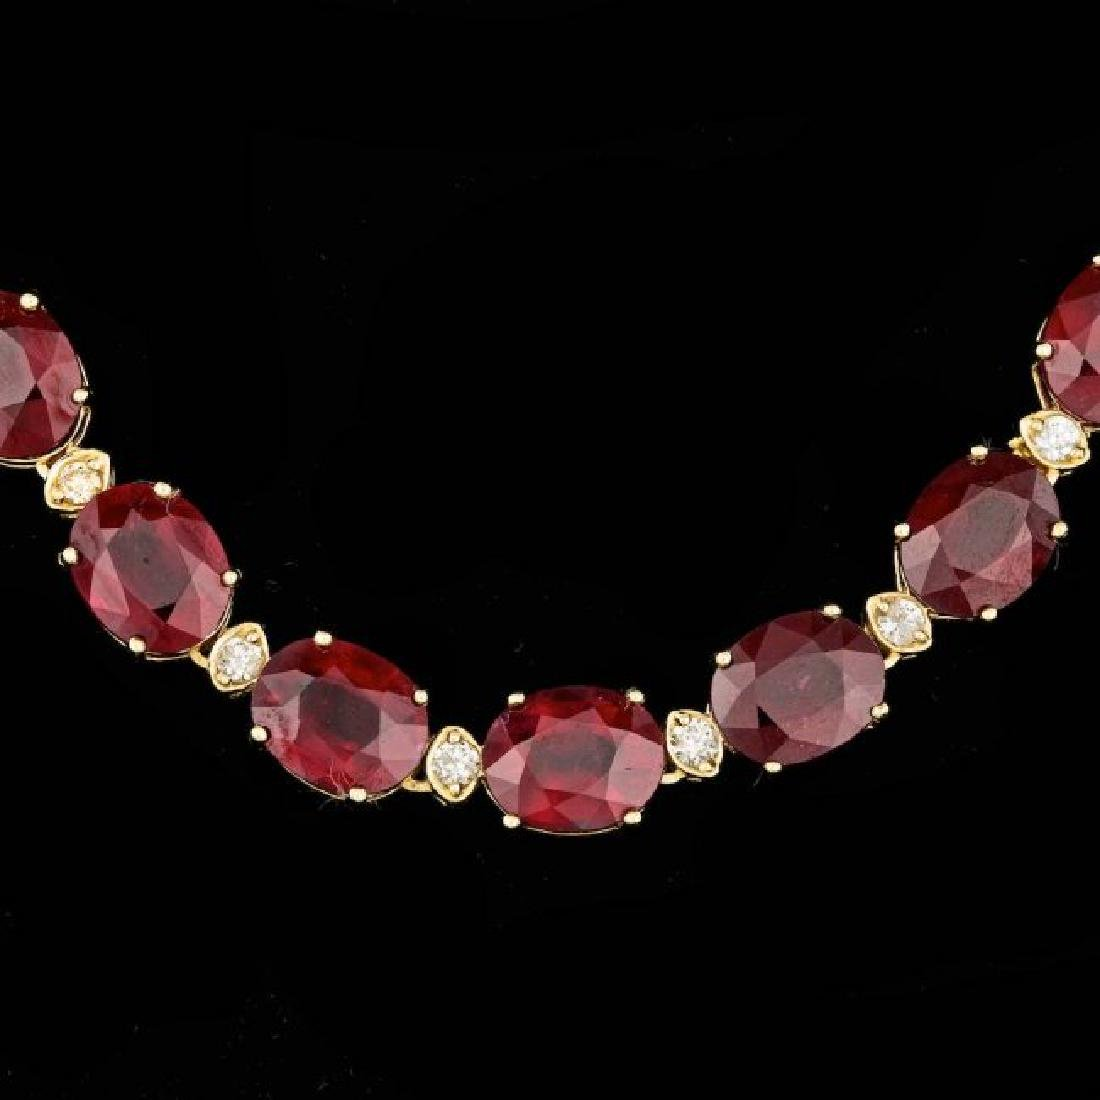 18k Gold 115.00ct Ruby 1.85ct Diamond Necklace - 2